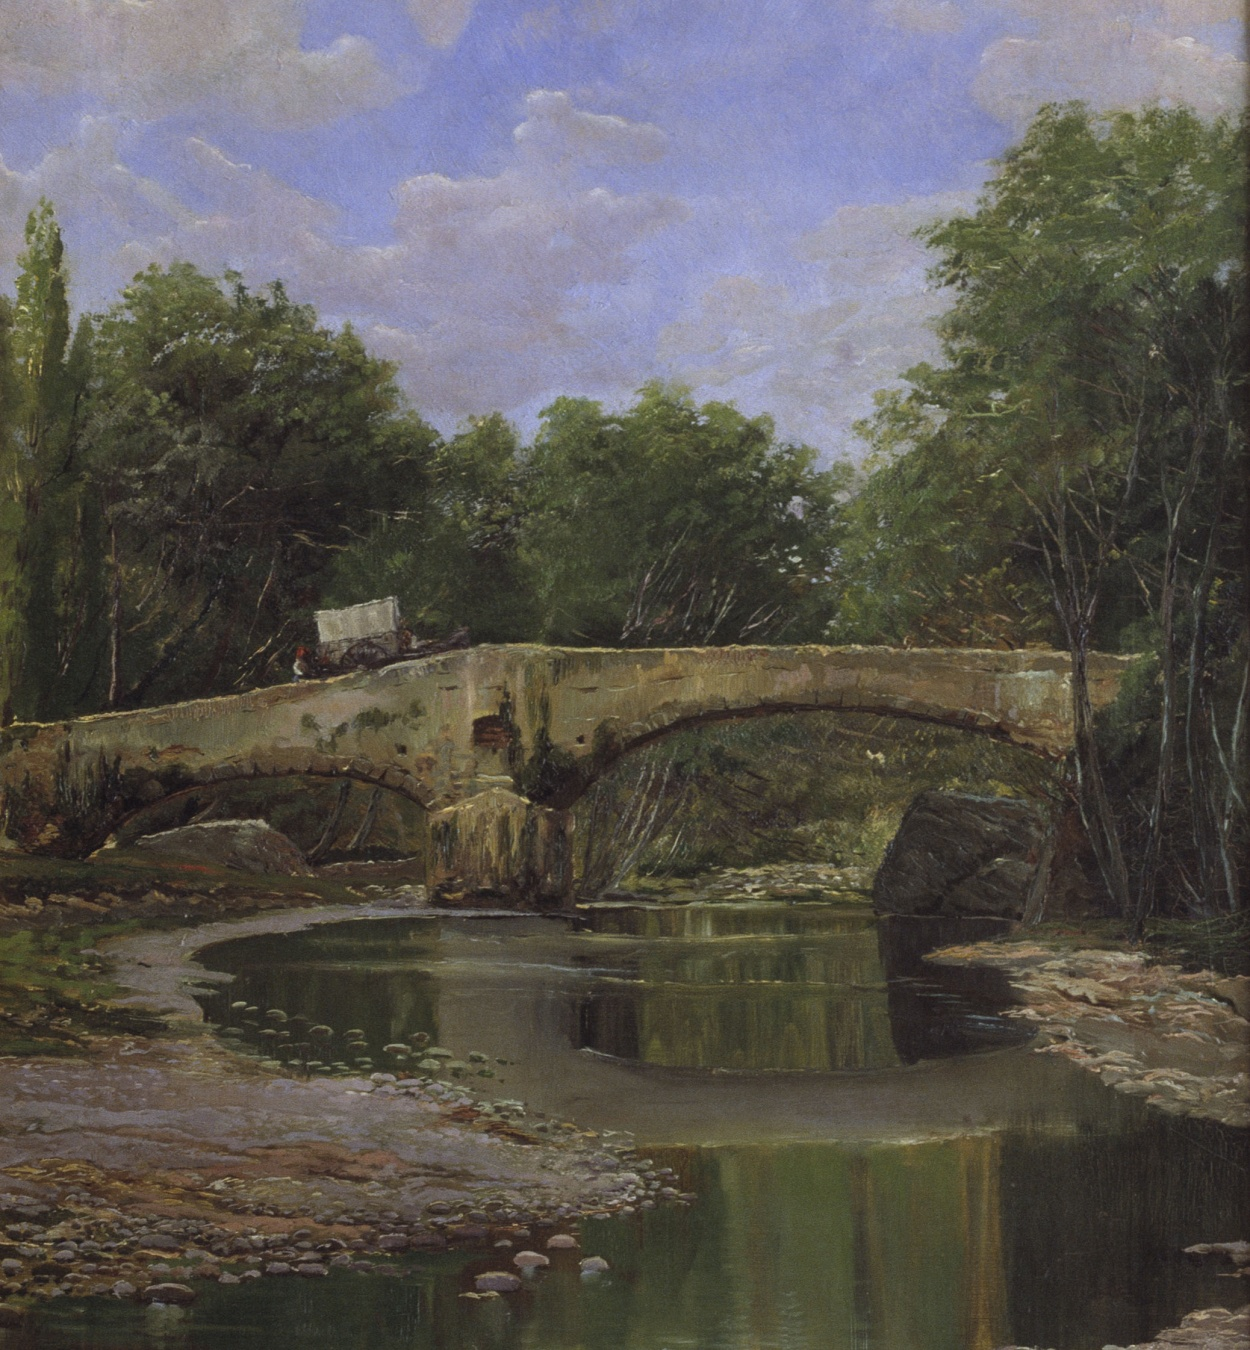 Santiago Rusiñol - Bridge over a River - Barcelona, Circa 1884